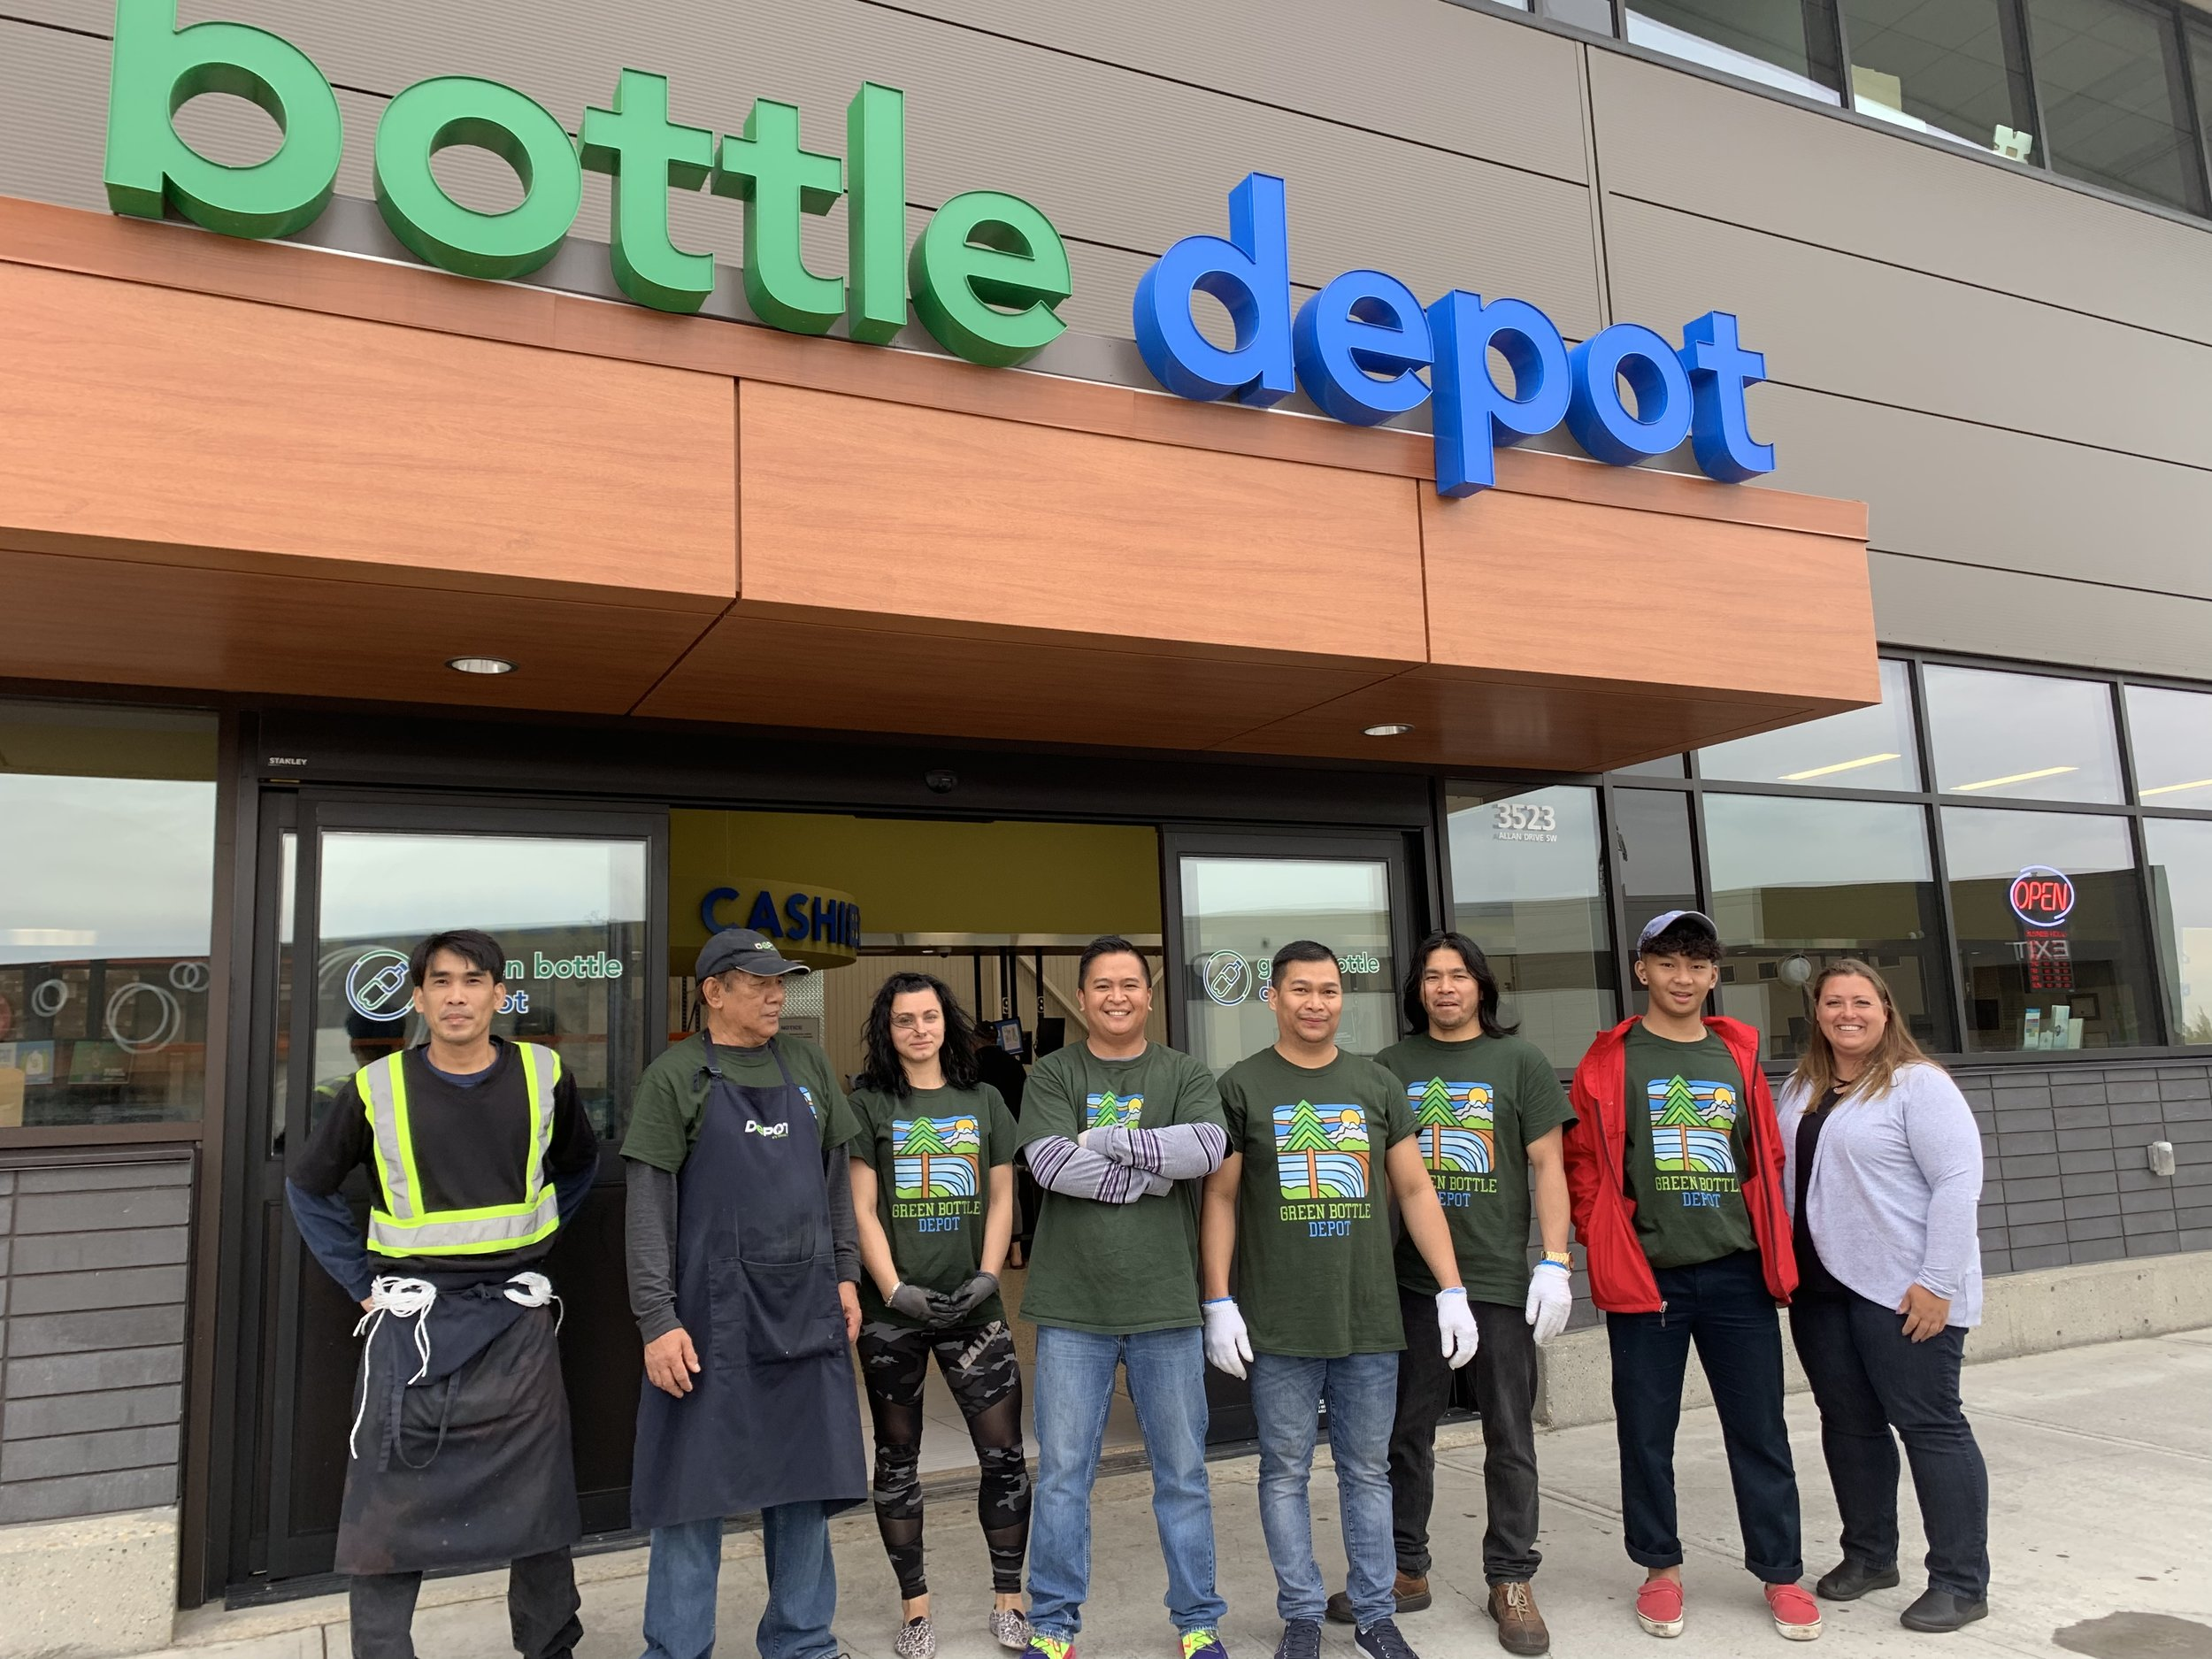 The Green Bottle Depot Windermere (Edmonton)